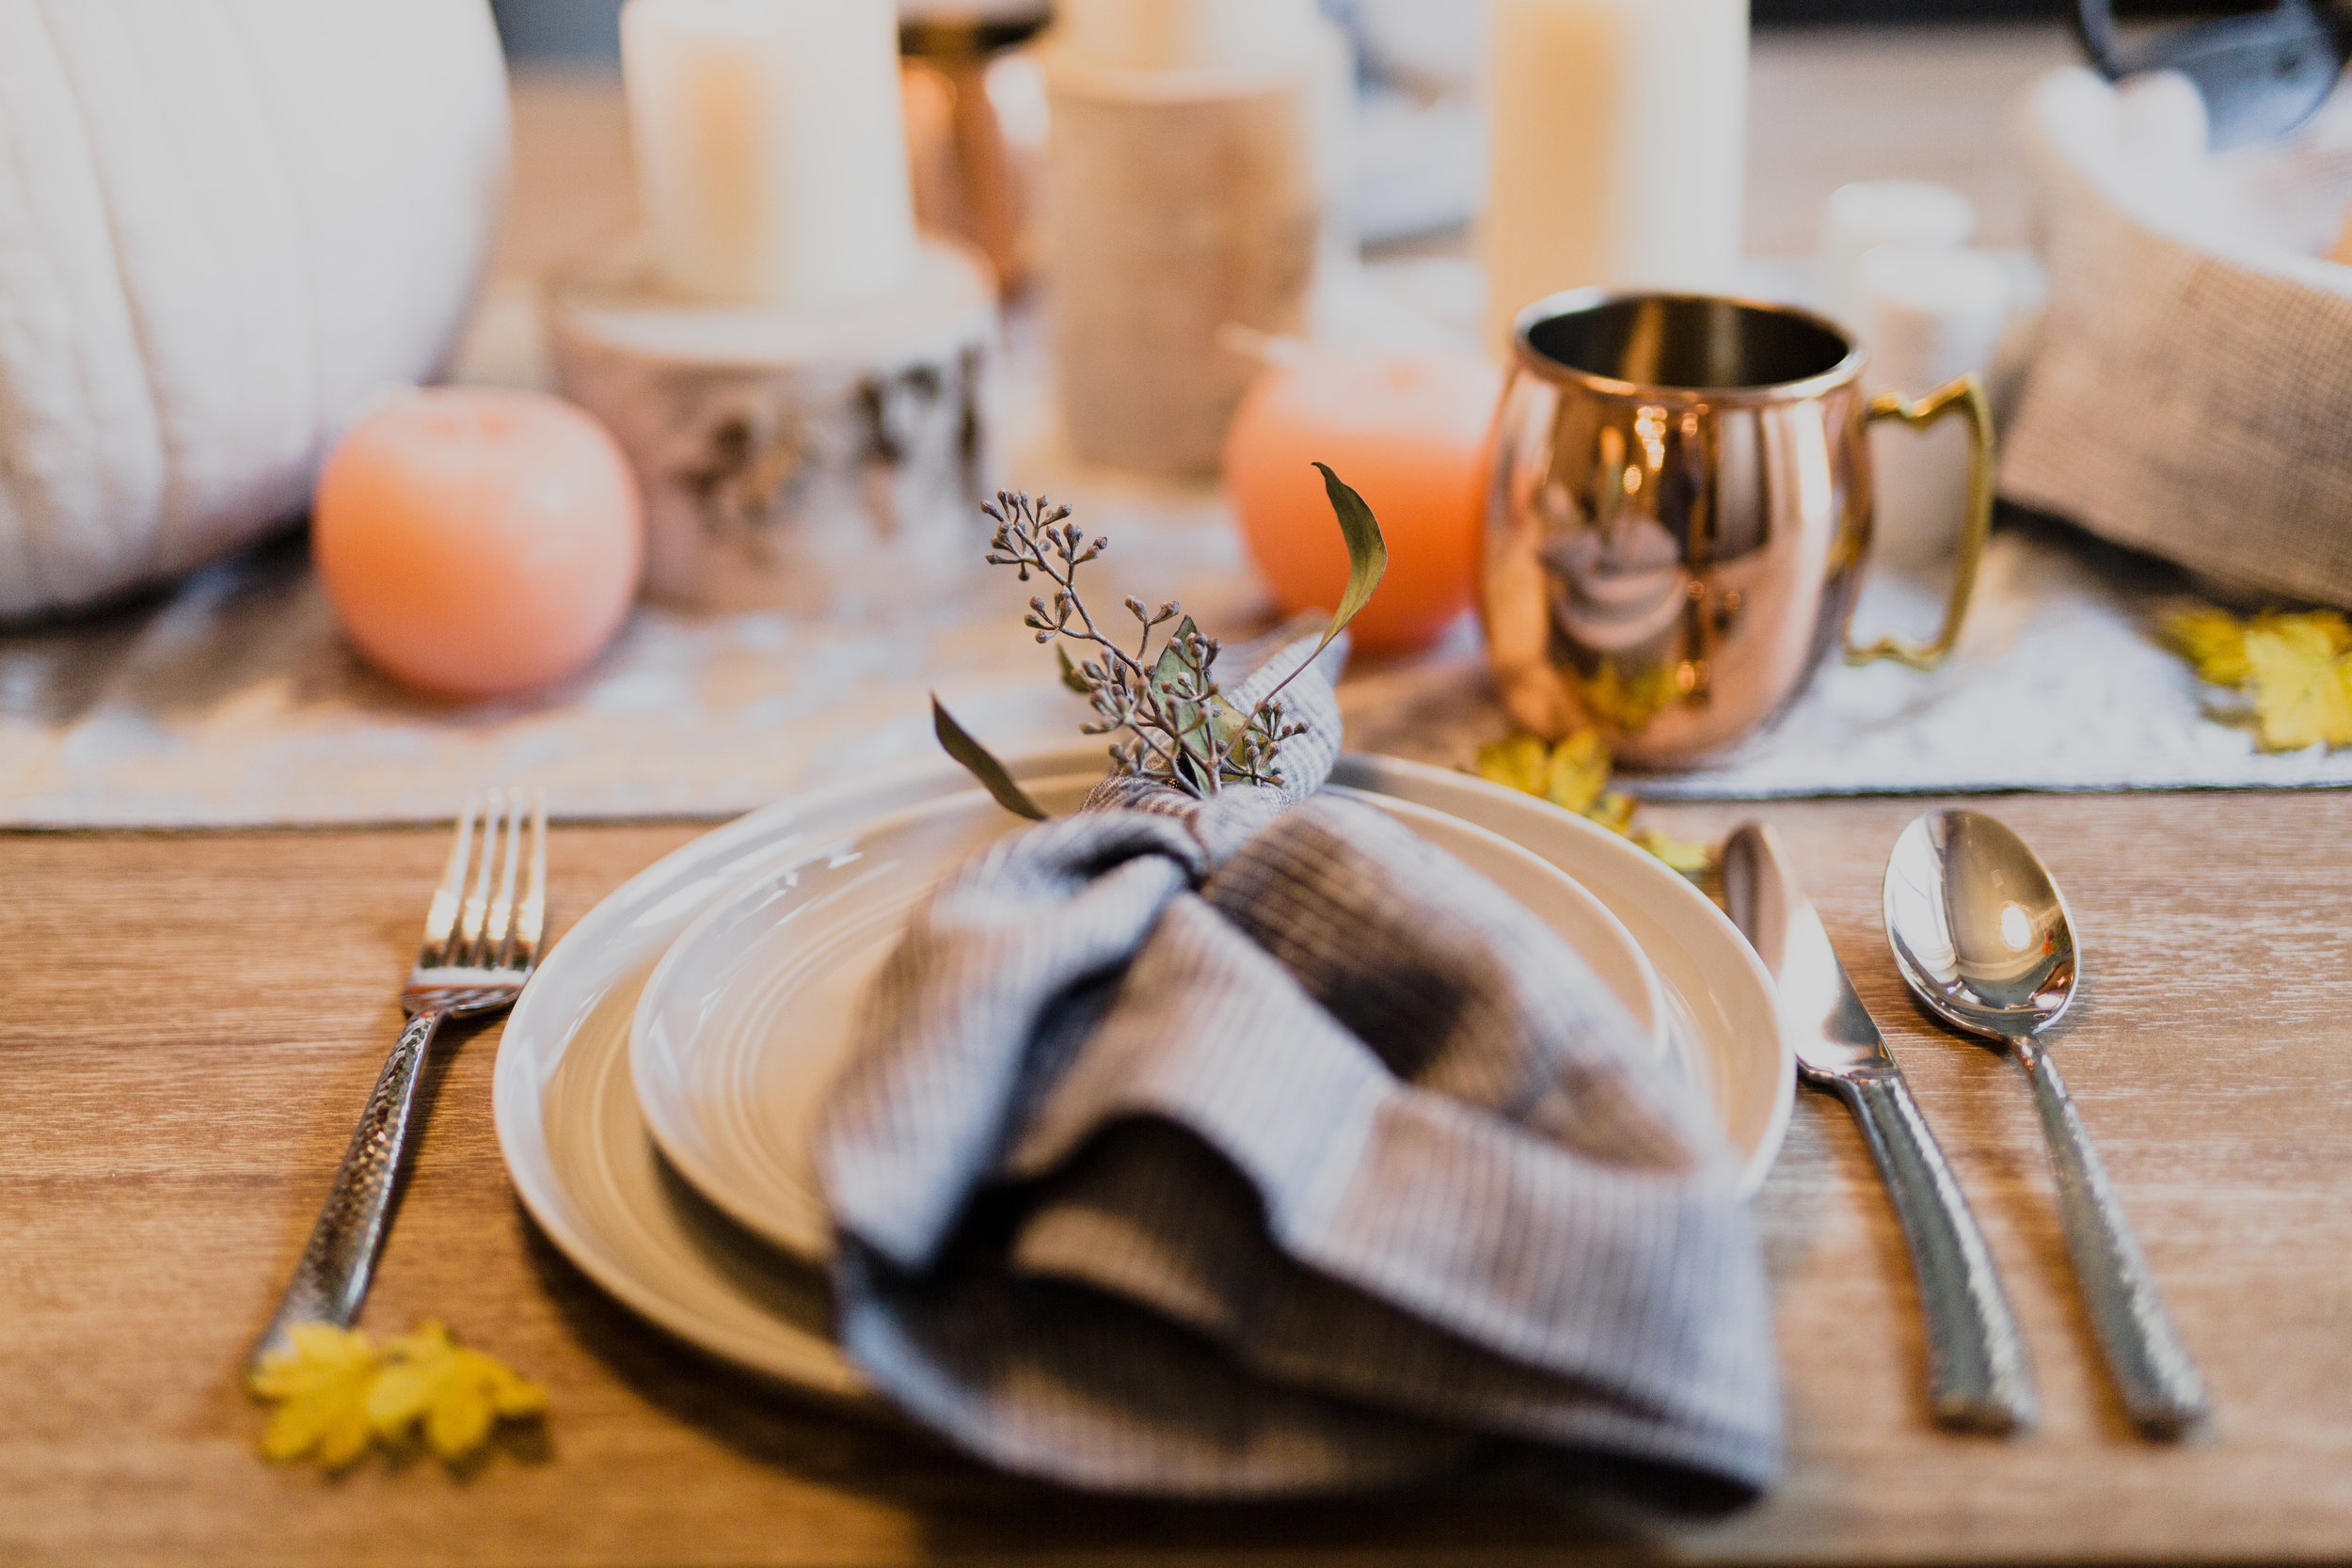 Fall Place Setting with Copper Mugs and Eucalyptus